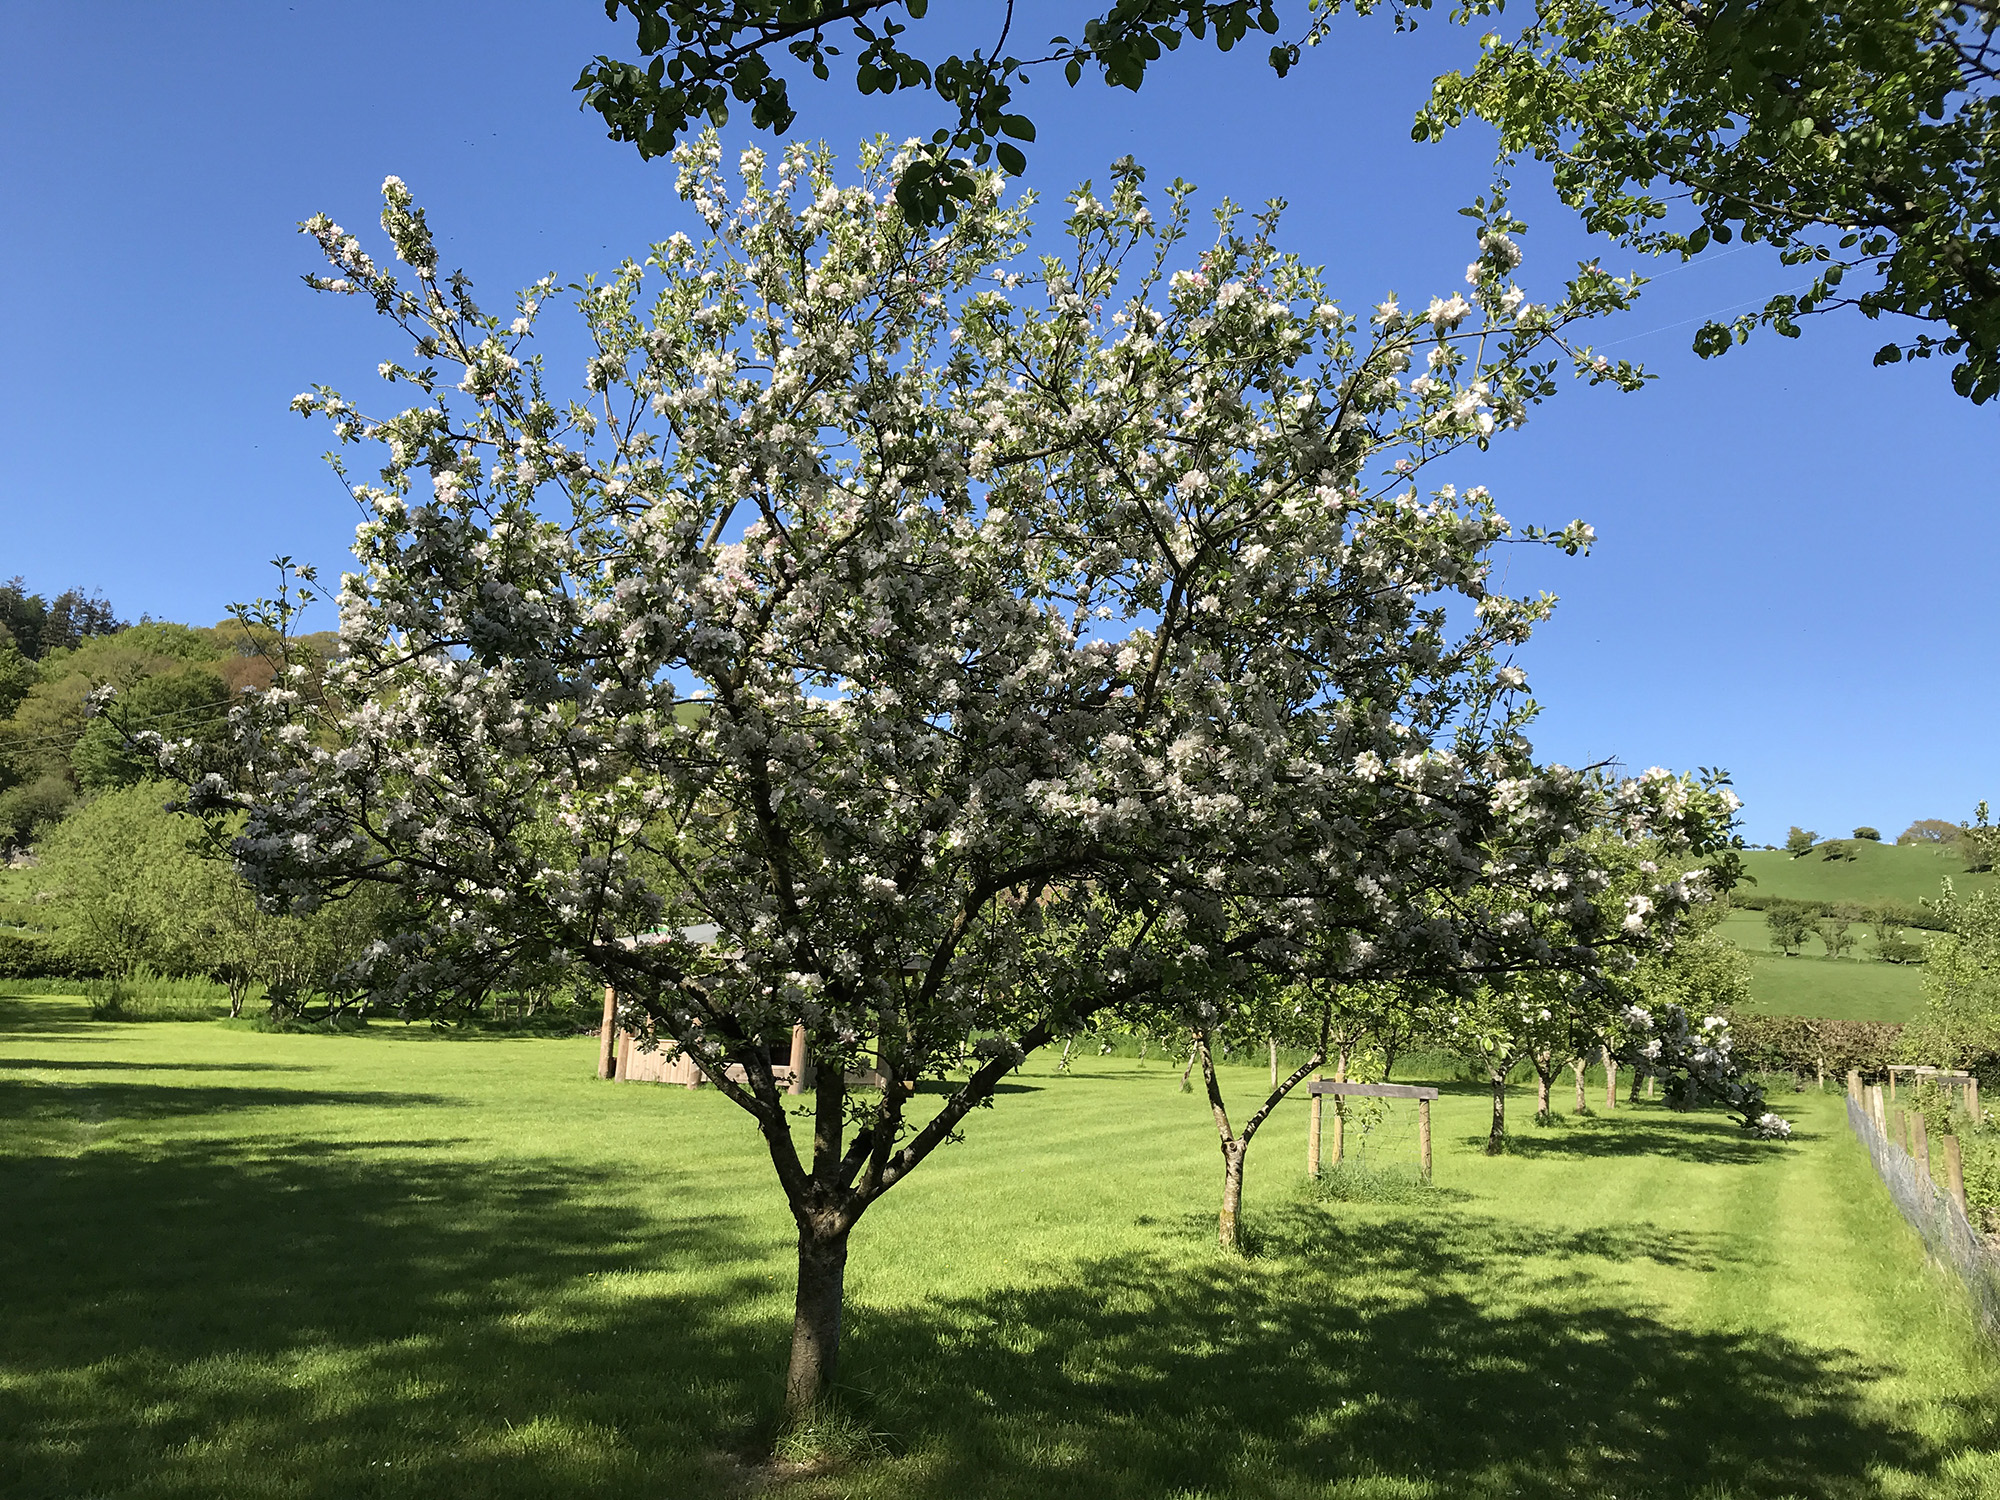 Camping - apple trees in blossom